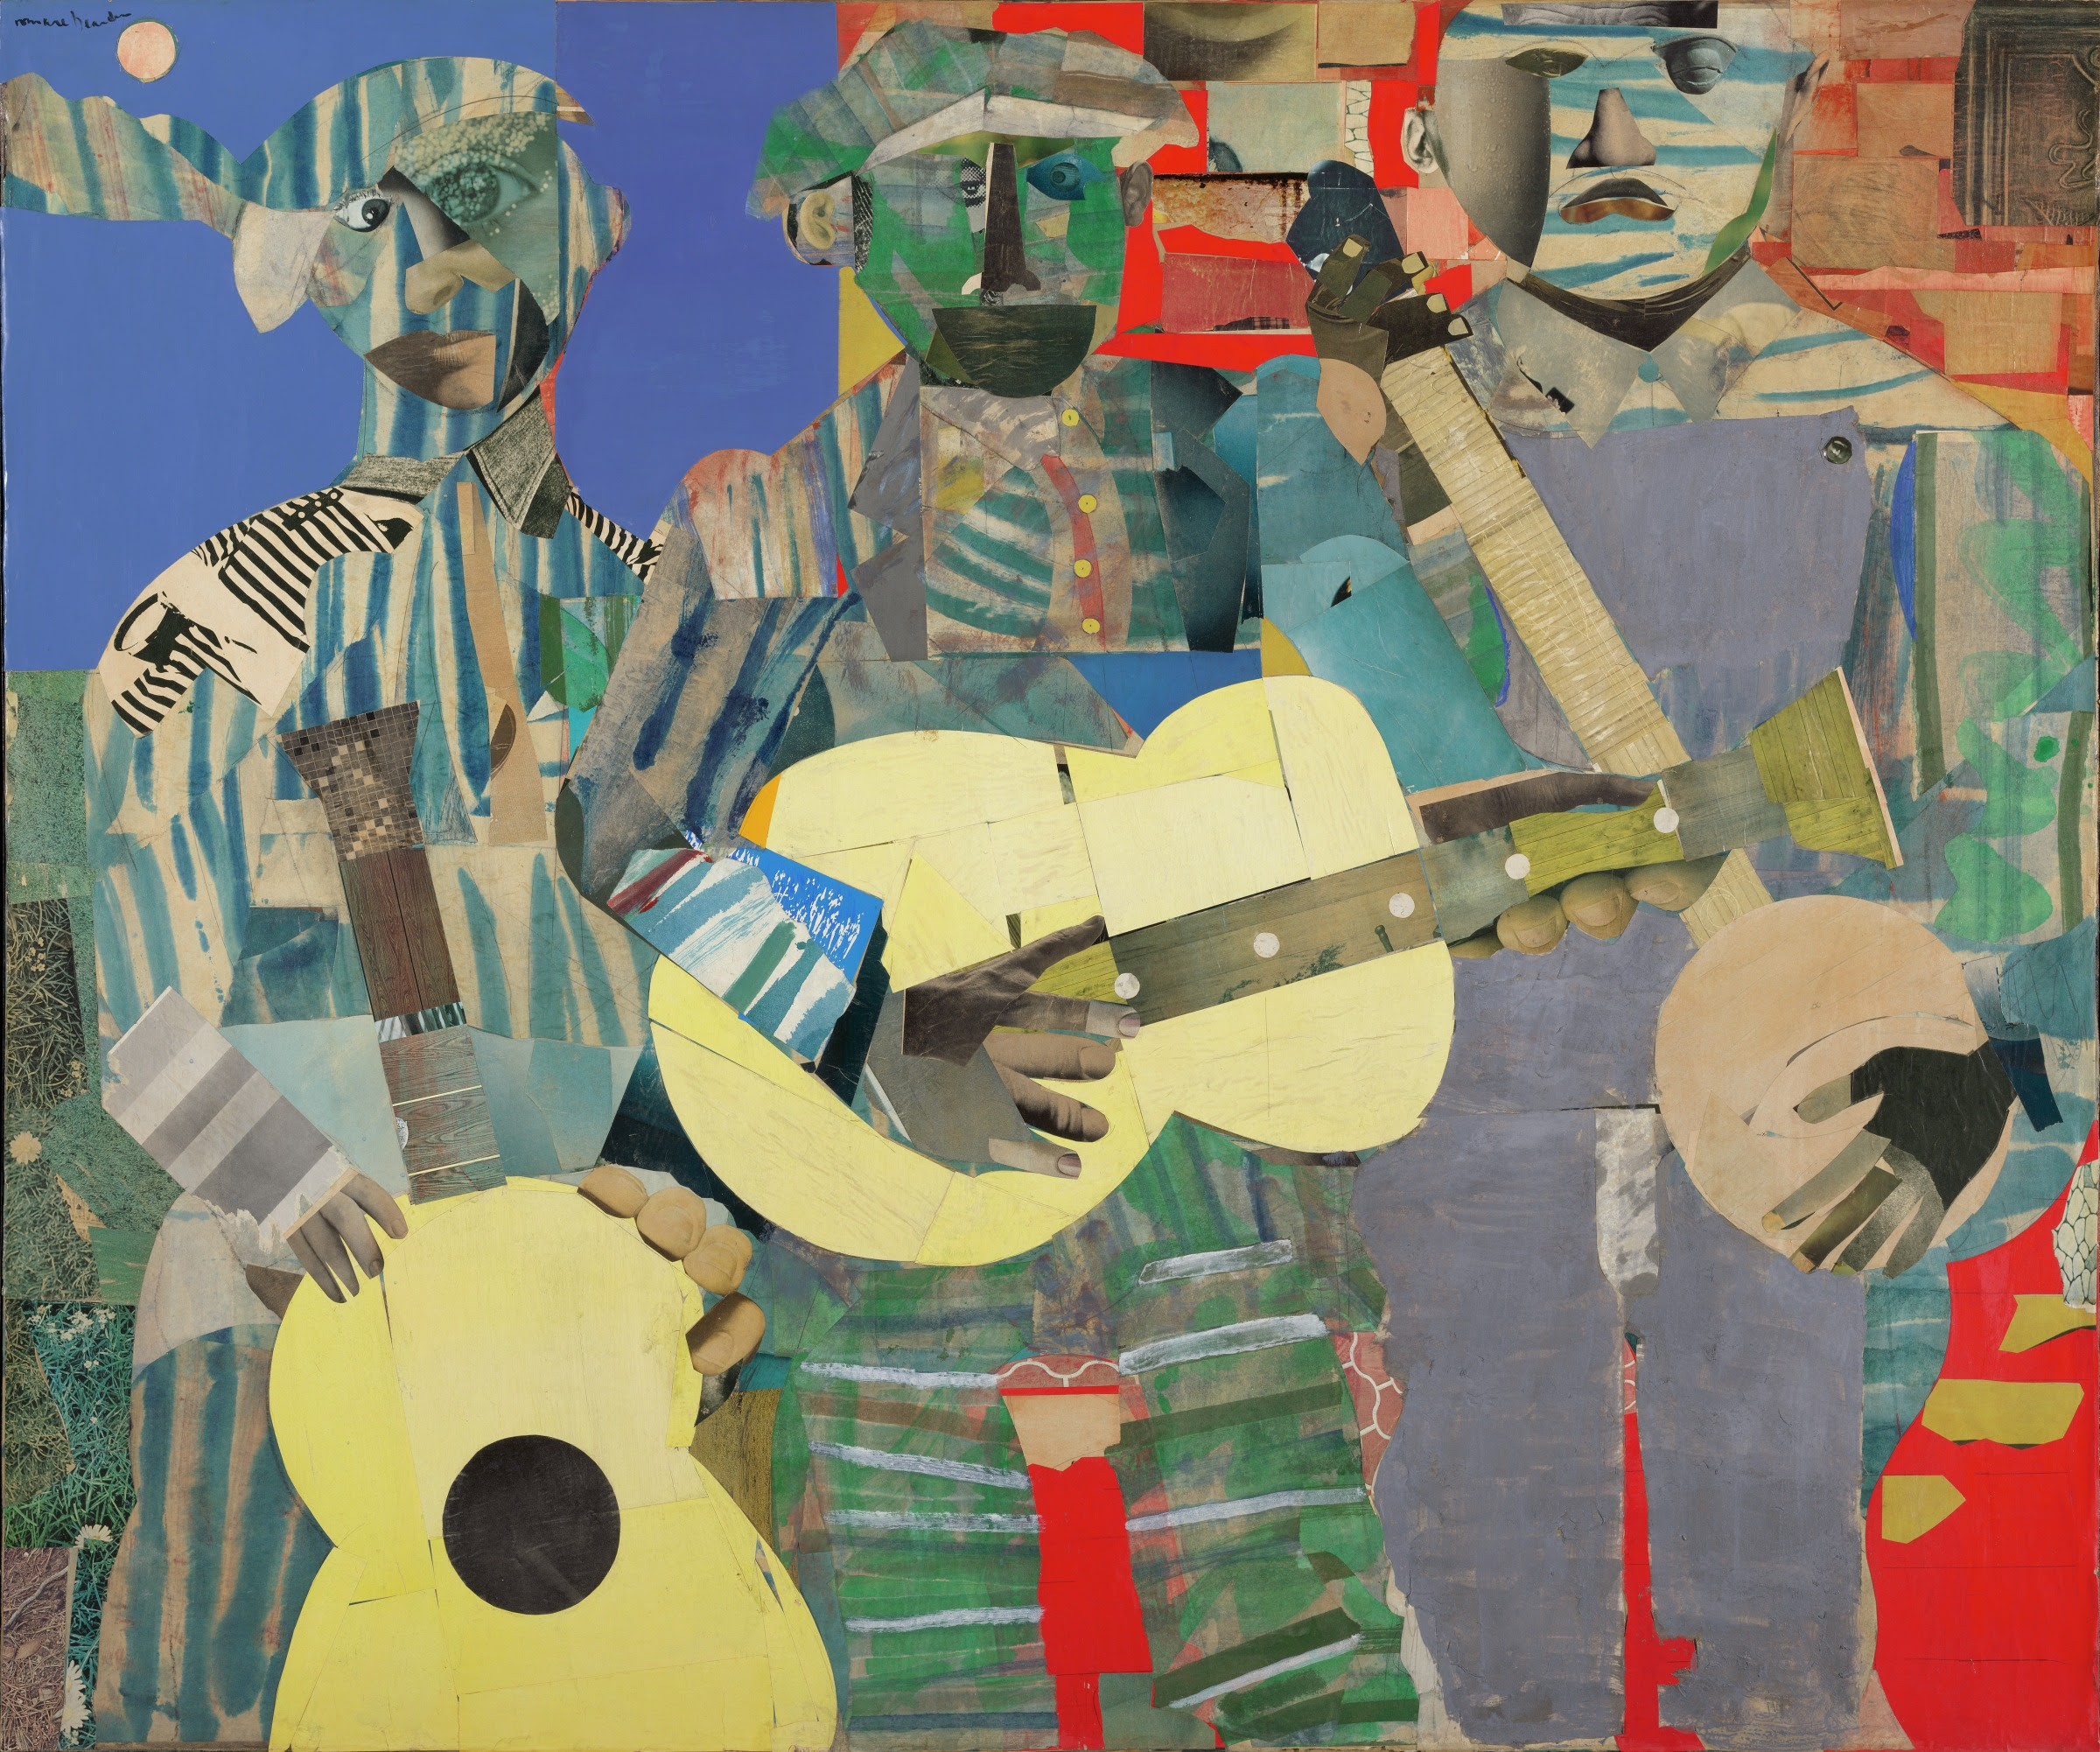 """""""Three Folk Musicians,"""" 1967, Romare Bearden (American, 1911-1988), collage of various papers with paint and graphite on canvas, 50 x 60 in. Art © Romare Bearden Foundation/Licensed by VAGA, New York, NY"""